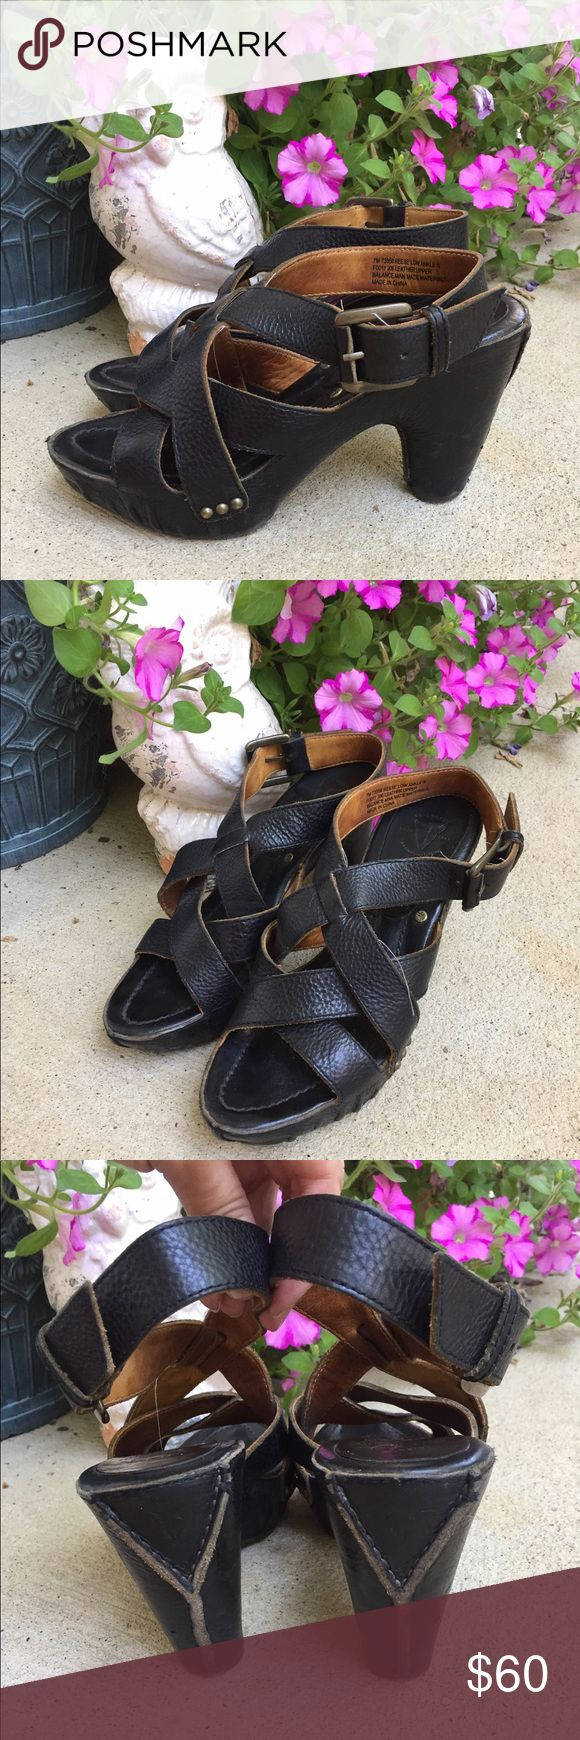 Frye Reese Low Ankle Strappy Platform Sandals VGUC. Will look beautiful with a little polishing. I really like these because I can walk in them all day. I just don't wear heels anymore and they aren't getting the use they should. TTS Frye Shoes Sandals